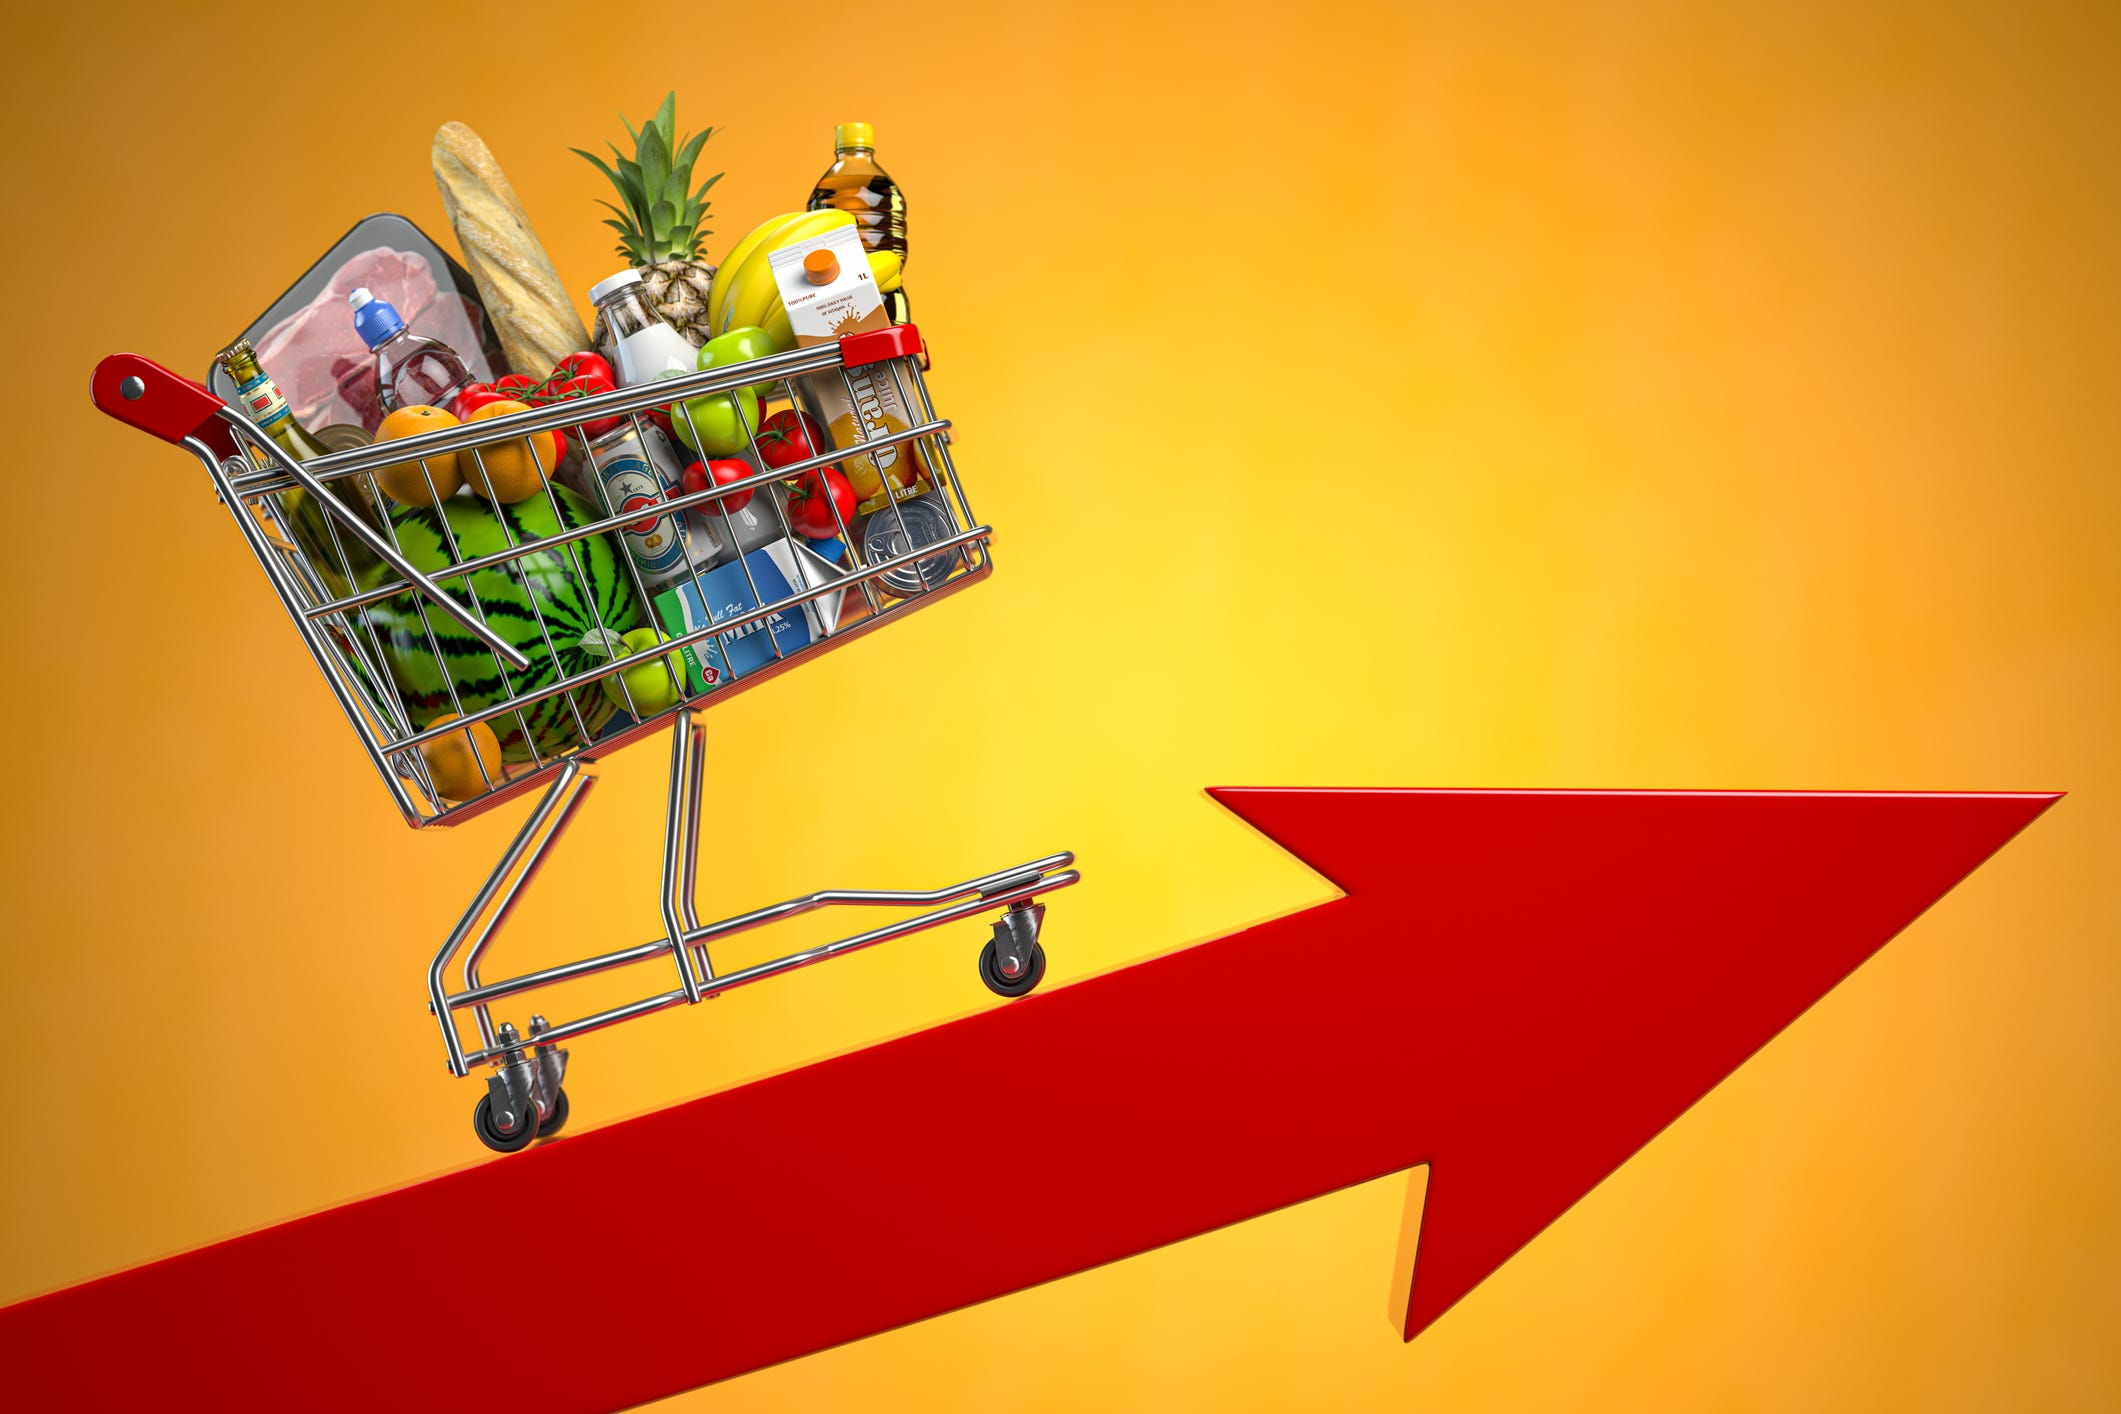 Consumer prices rising in South and Midwest amid recovery, threatening low-cost appeal